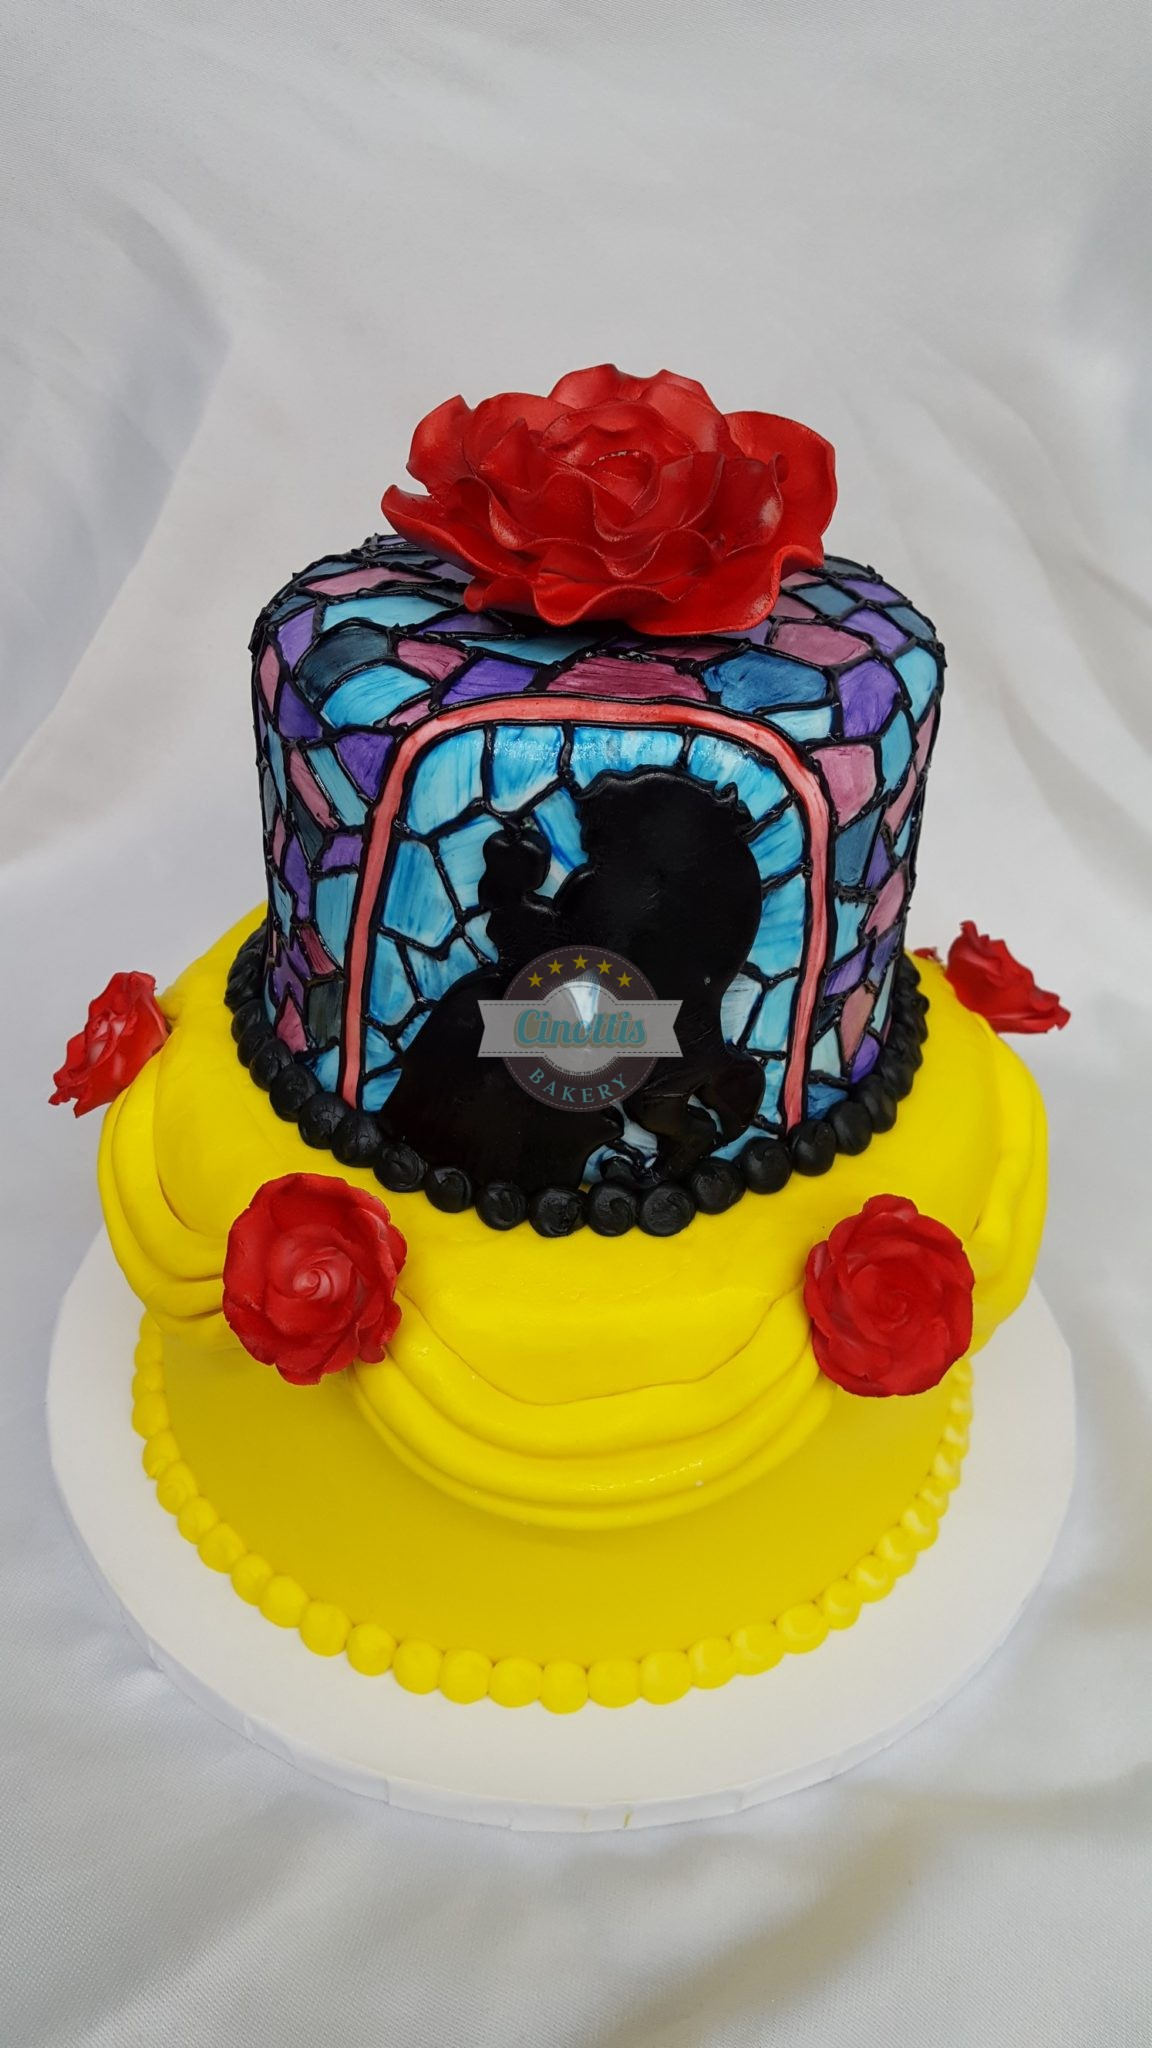 Beauty and The Beast Inspired Cake from Cinottis Bakery